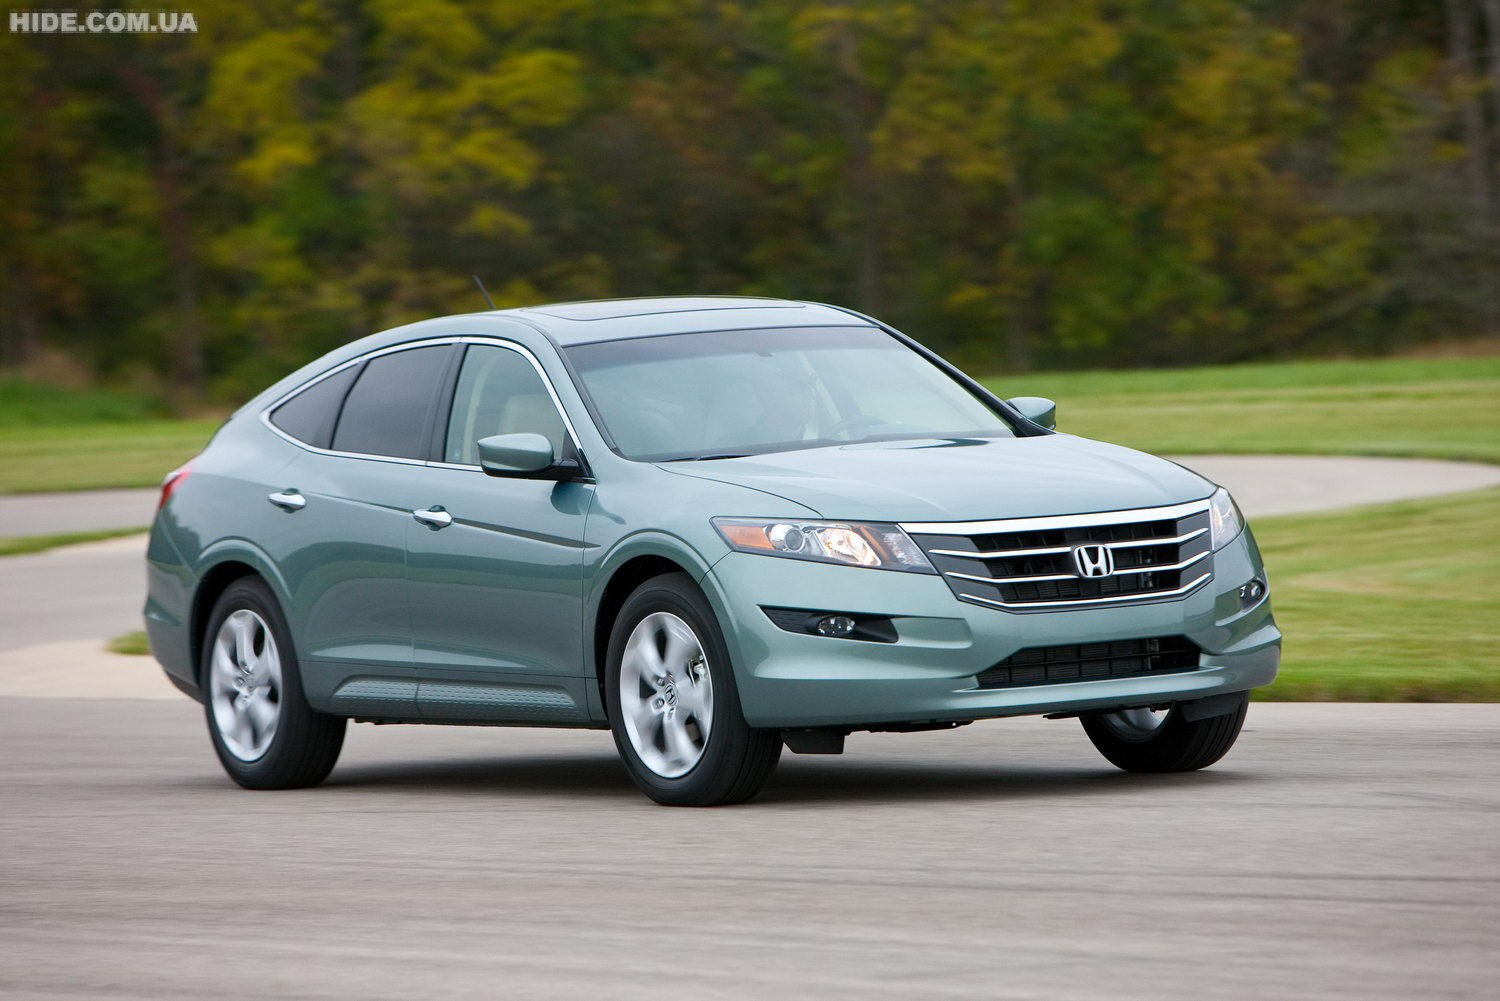 Honda Accord Crosstour: 7 фото